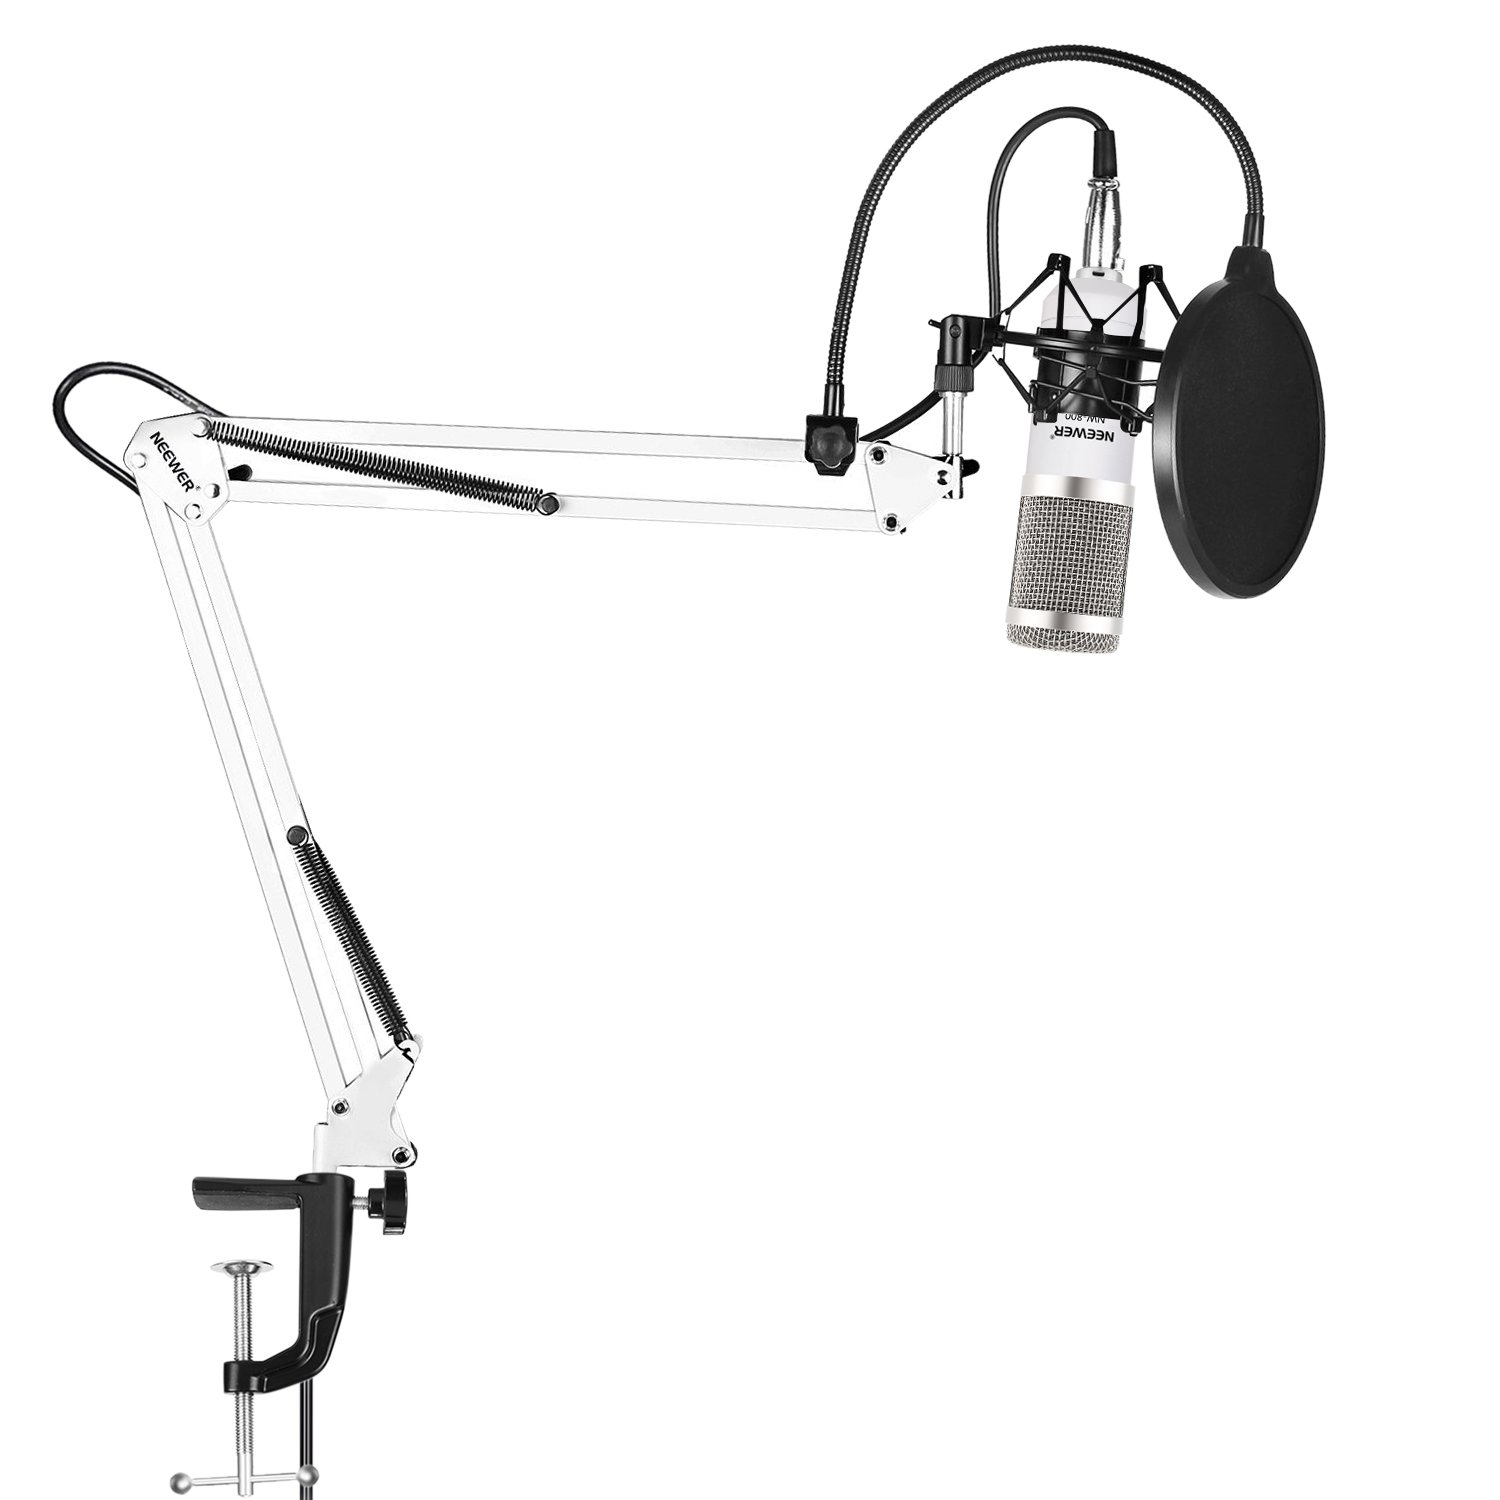 Neewer NW-800 Pro Studio Broadcasting Recording Condenser Mic Kit with NW-35 Adjustable Mic Suspension Scissor Arm Stand with Black Shock Mount and Table Mounting Clamp, Pop Filter(White and Silver) 40093342